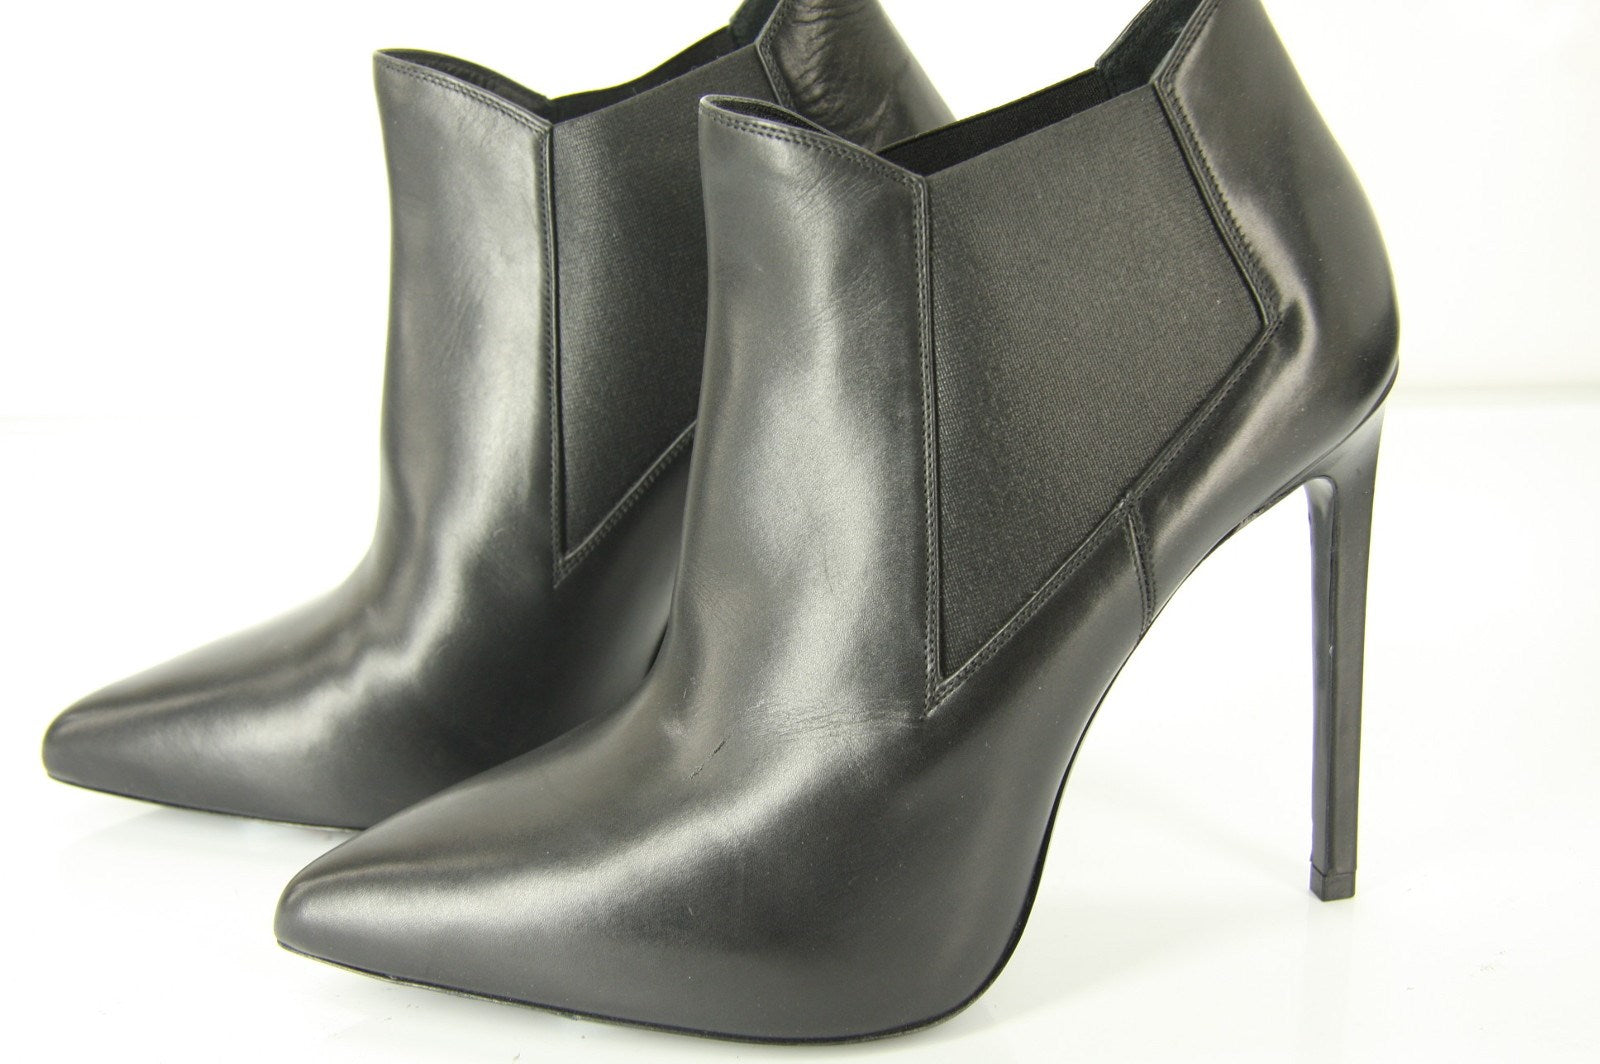 Saint Laurent Black Leather Paris Pointed Toe Ankle Boots Size 39.5 NIB YSL Yves